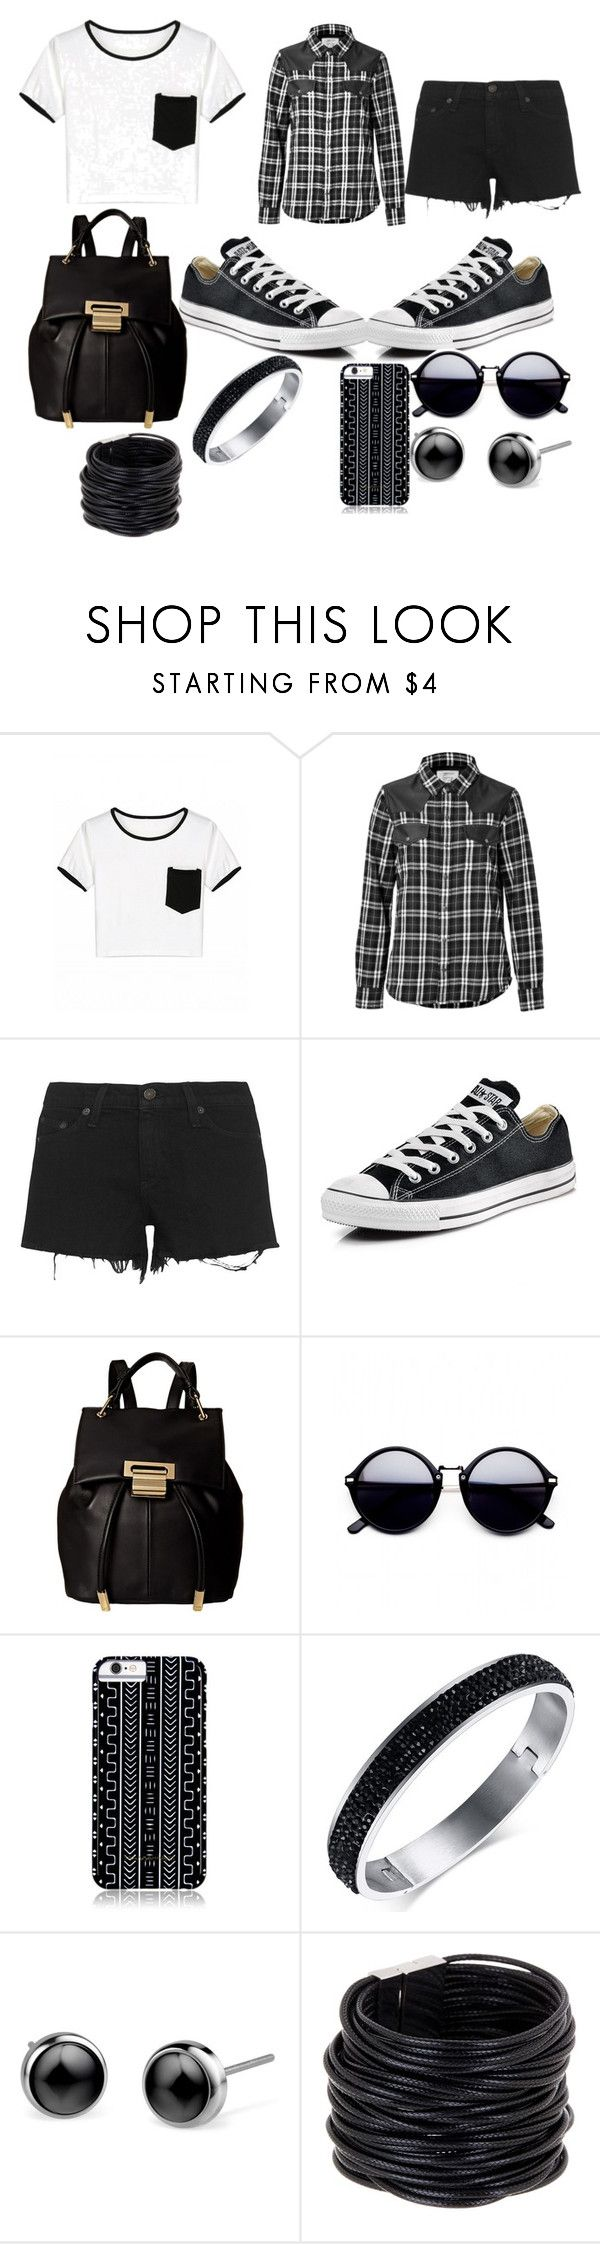 """#CaliforniaStyle"" by nevaeh316 ❤ liked on Polyvore featuring Current/Elliott, rag & bone, Converse, Ivanka Trump, Savannah Hayes and Saachi"